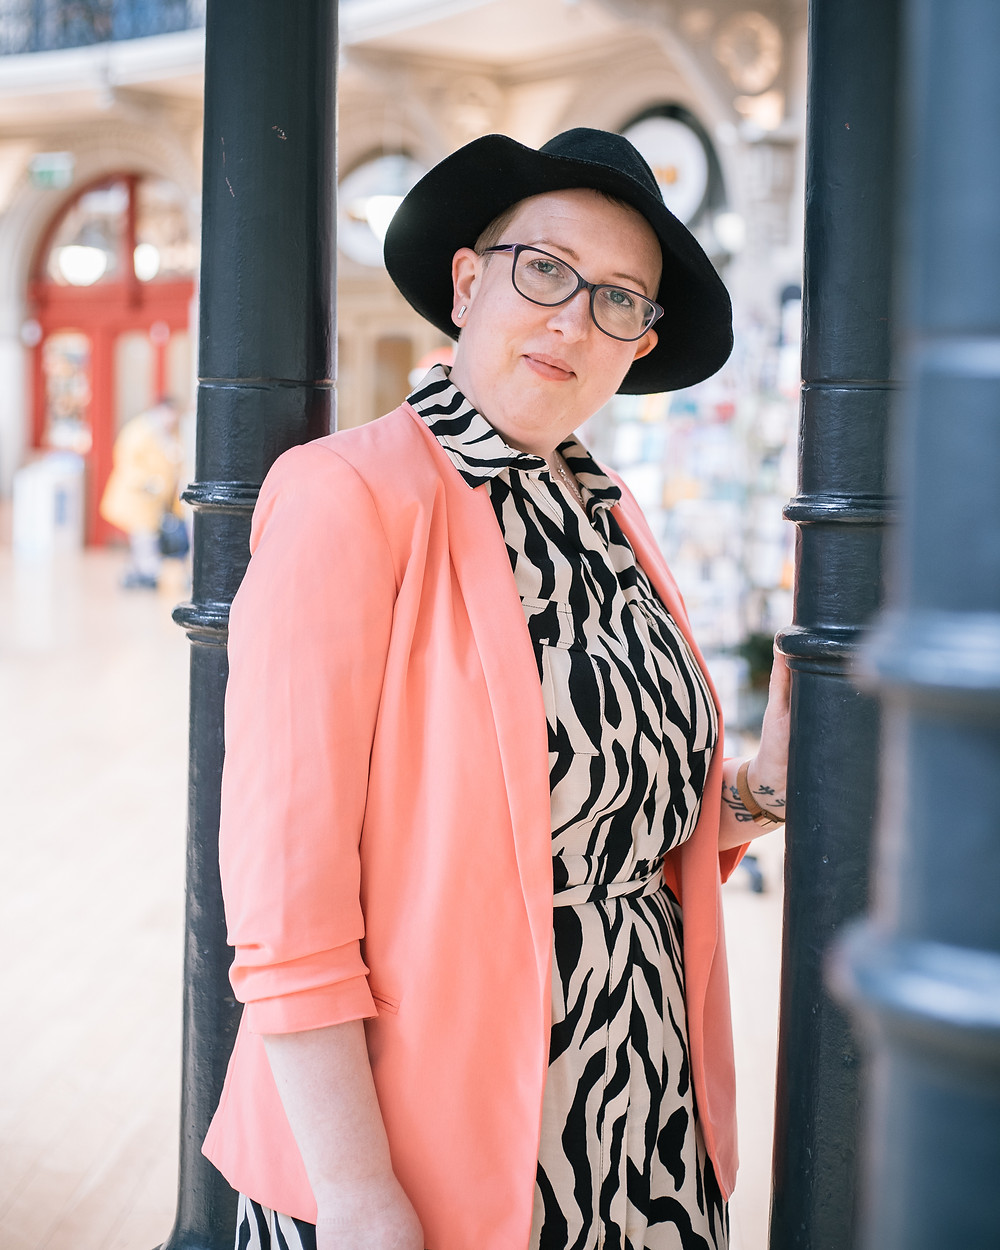 Sarah is wearing a zebra print dress, coral blazer and black fedora hat. she is leaning against a black pole